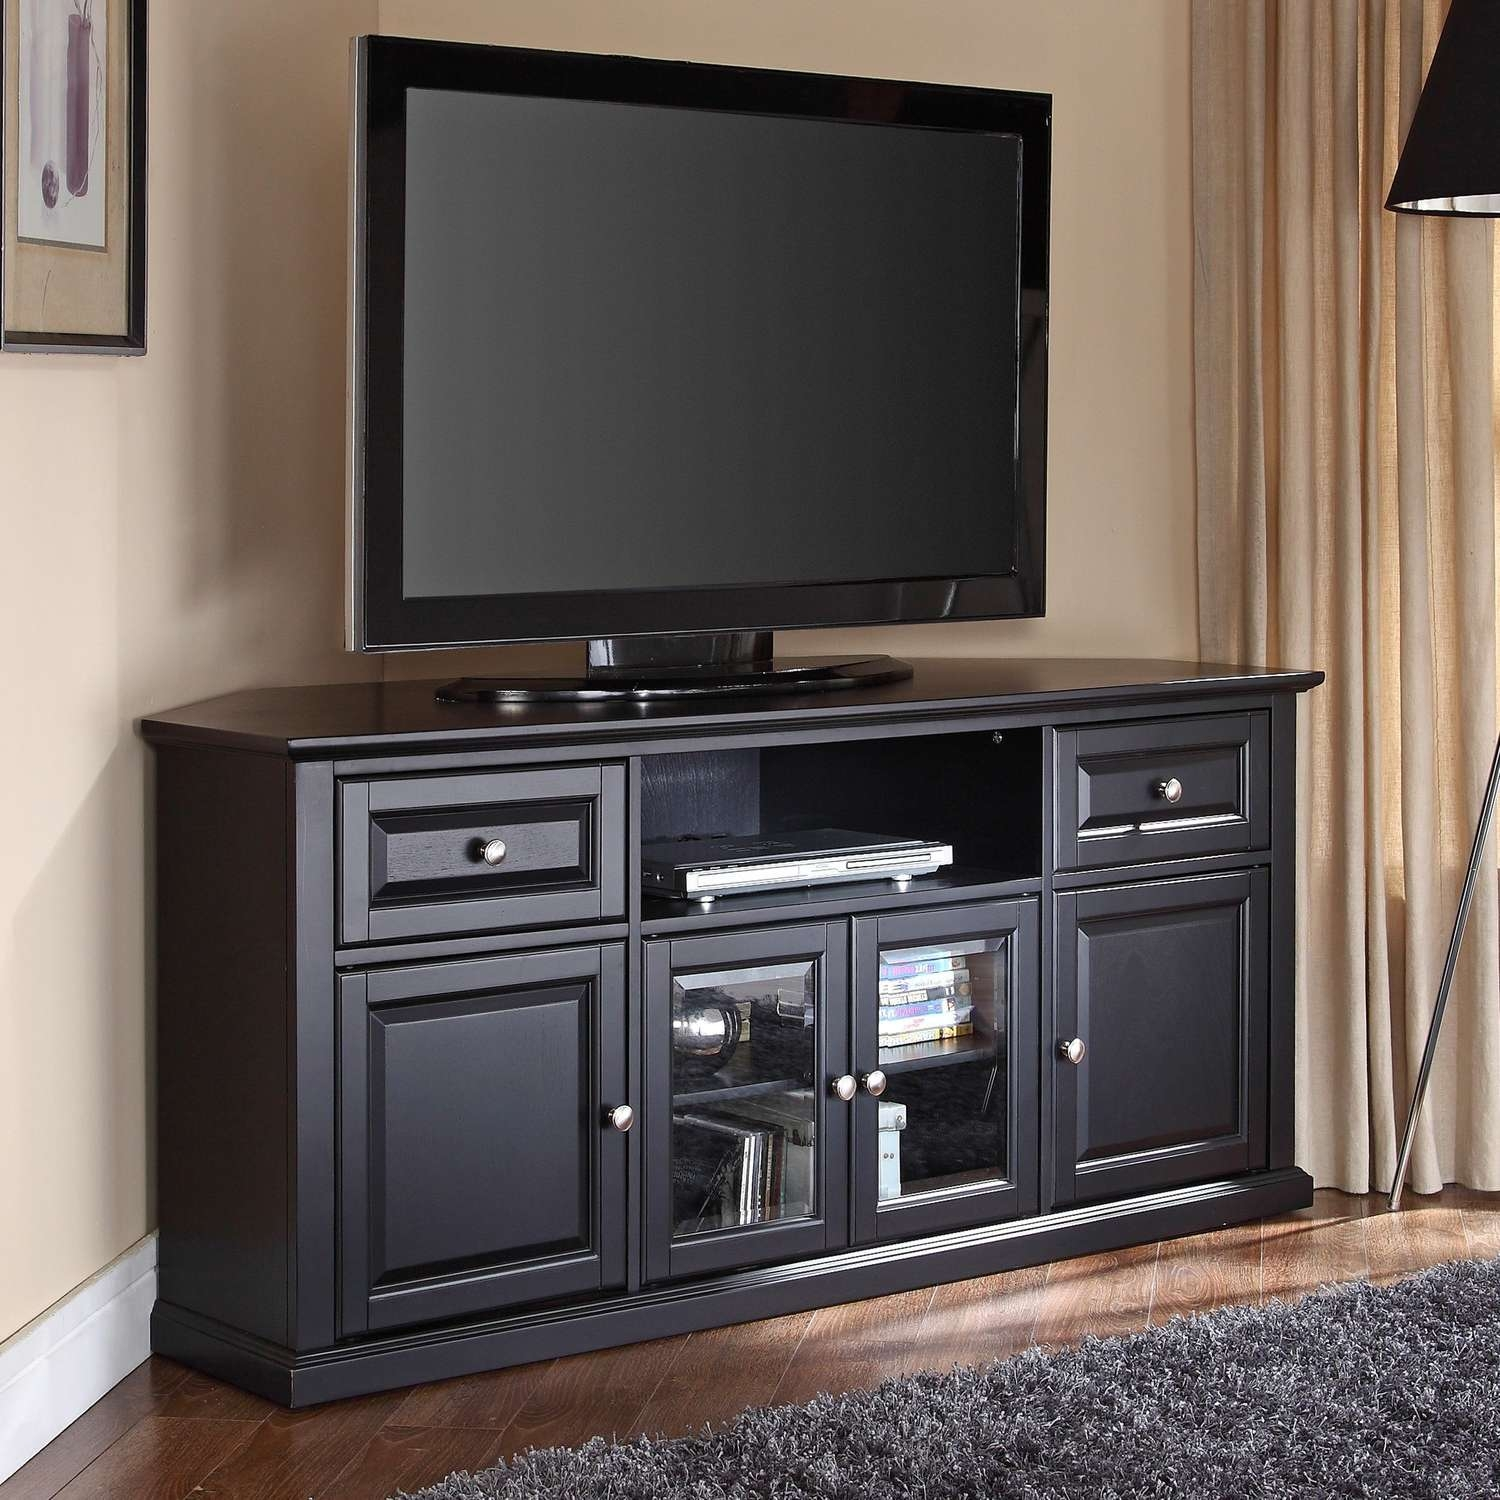 Talla Cabinets With Doors Glass Elegant Black Hardwood Cabinet Throughout Corner Tv Cabinets For Flat Screens (View 17 of 20)